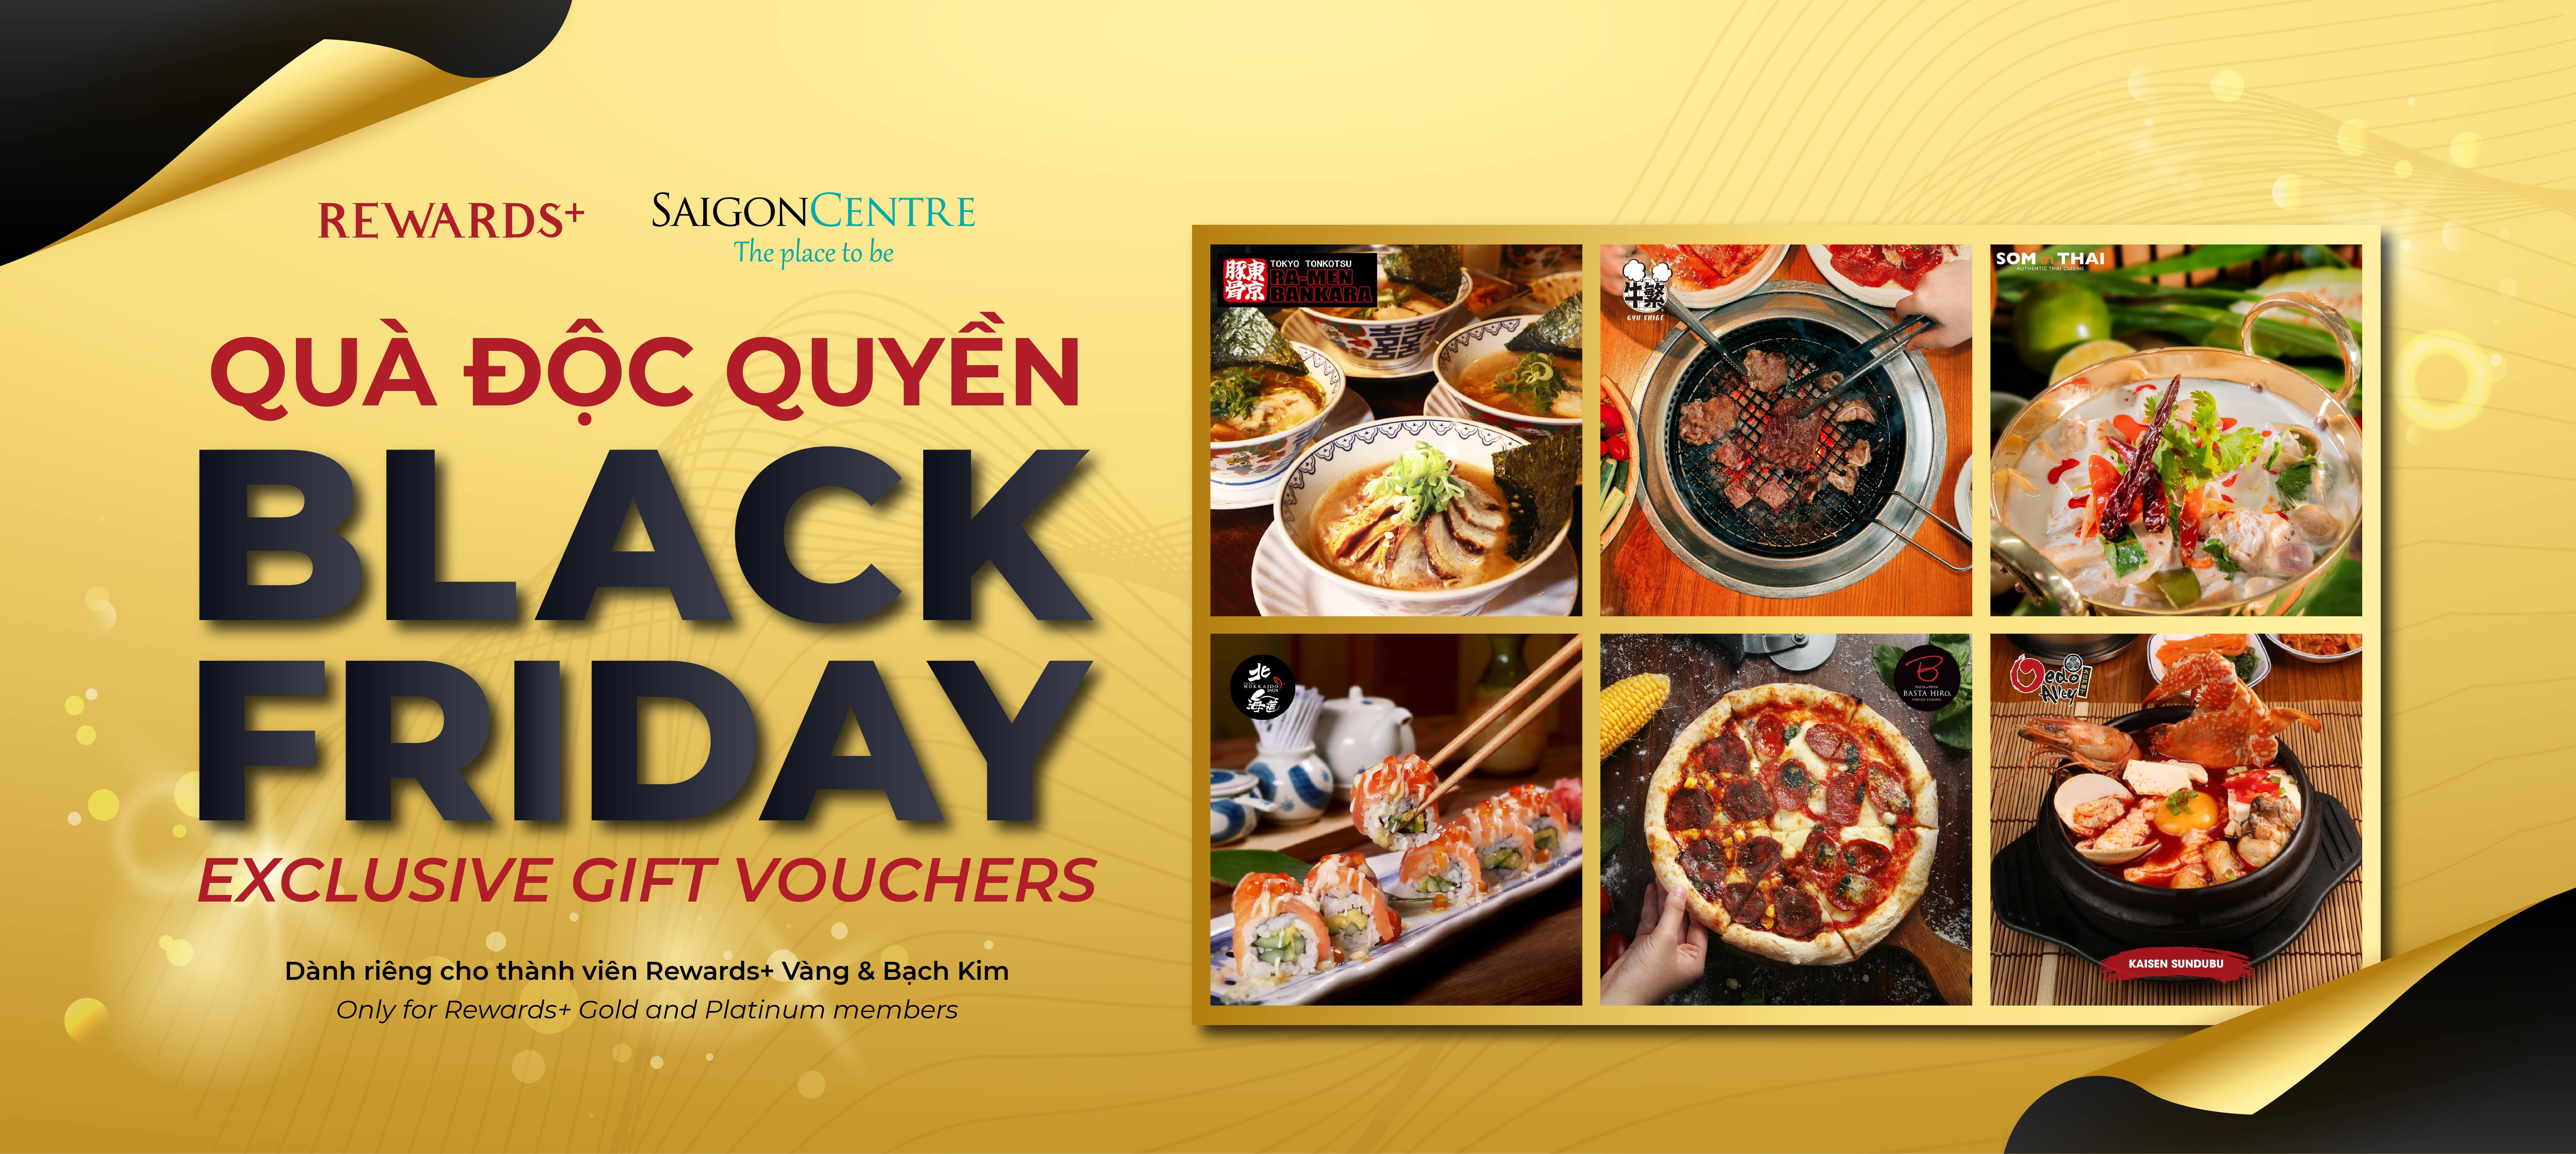 Black Friday exclusive gift vouchers